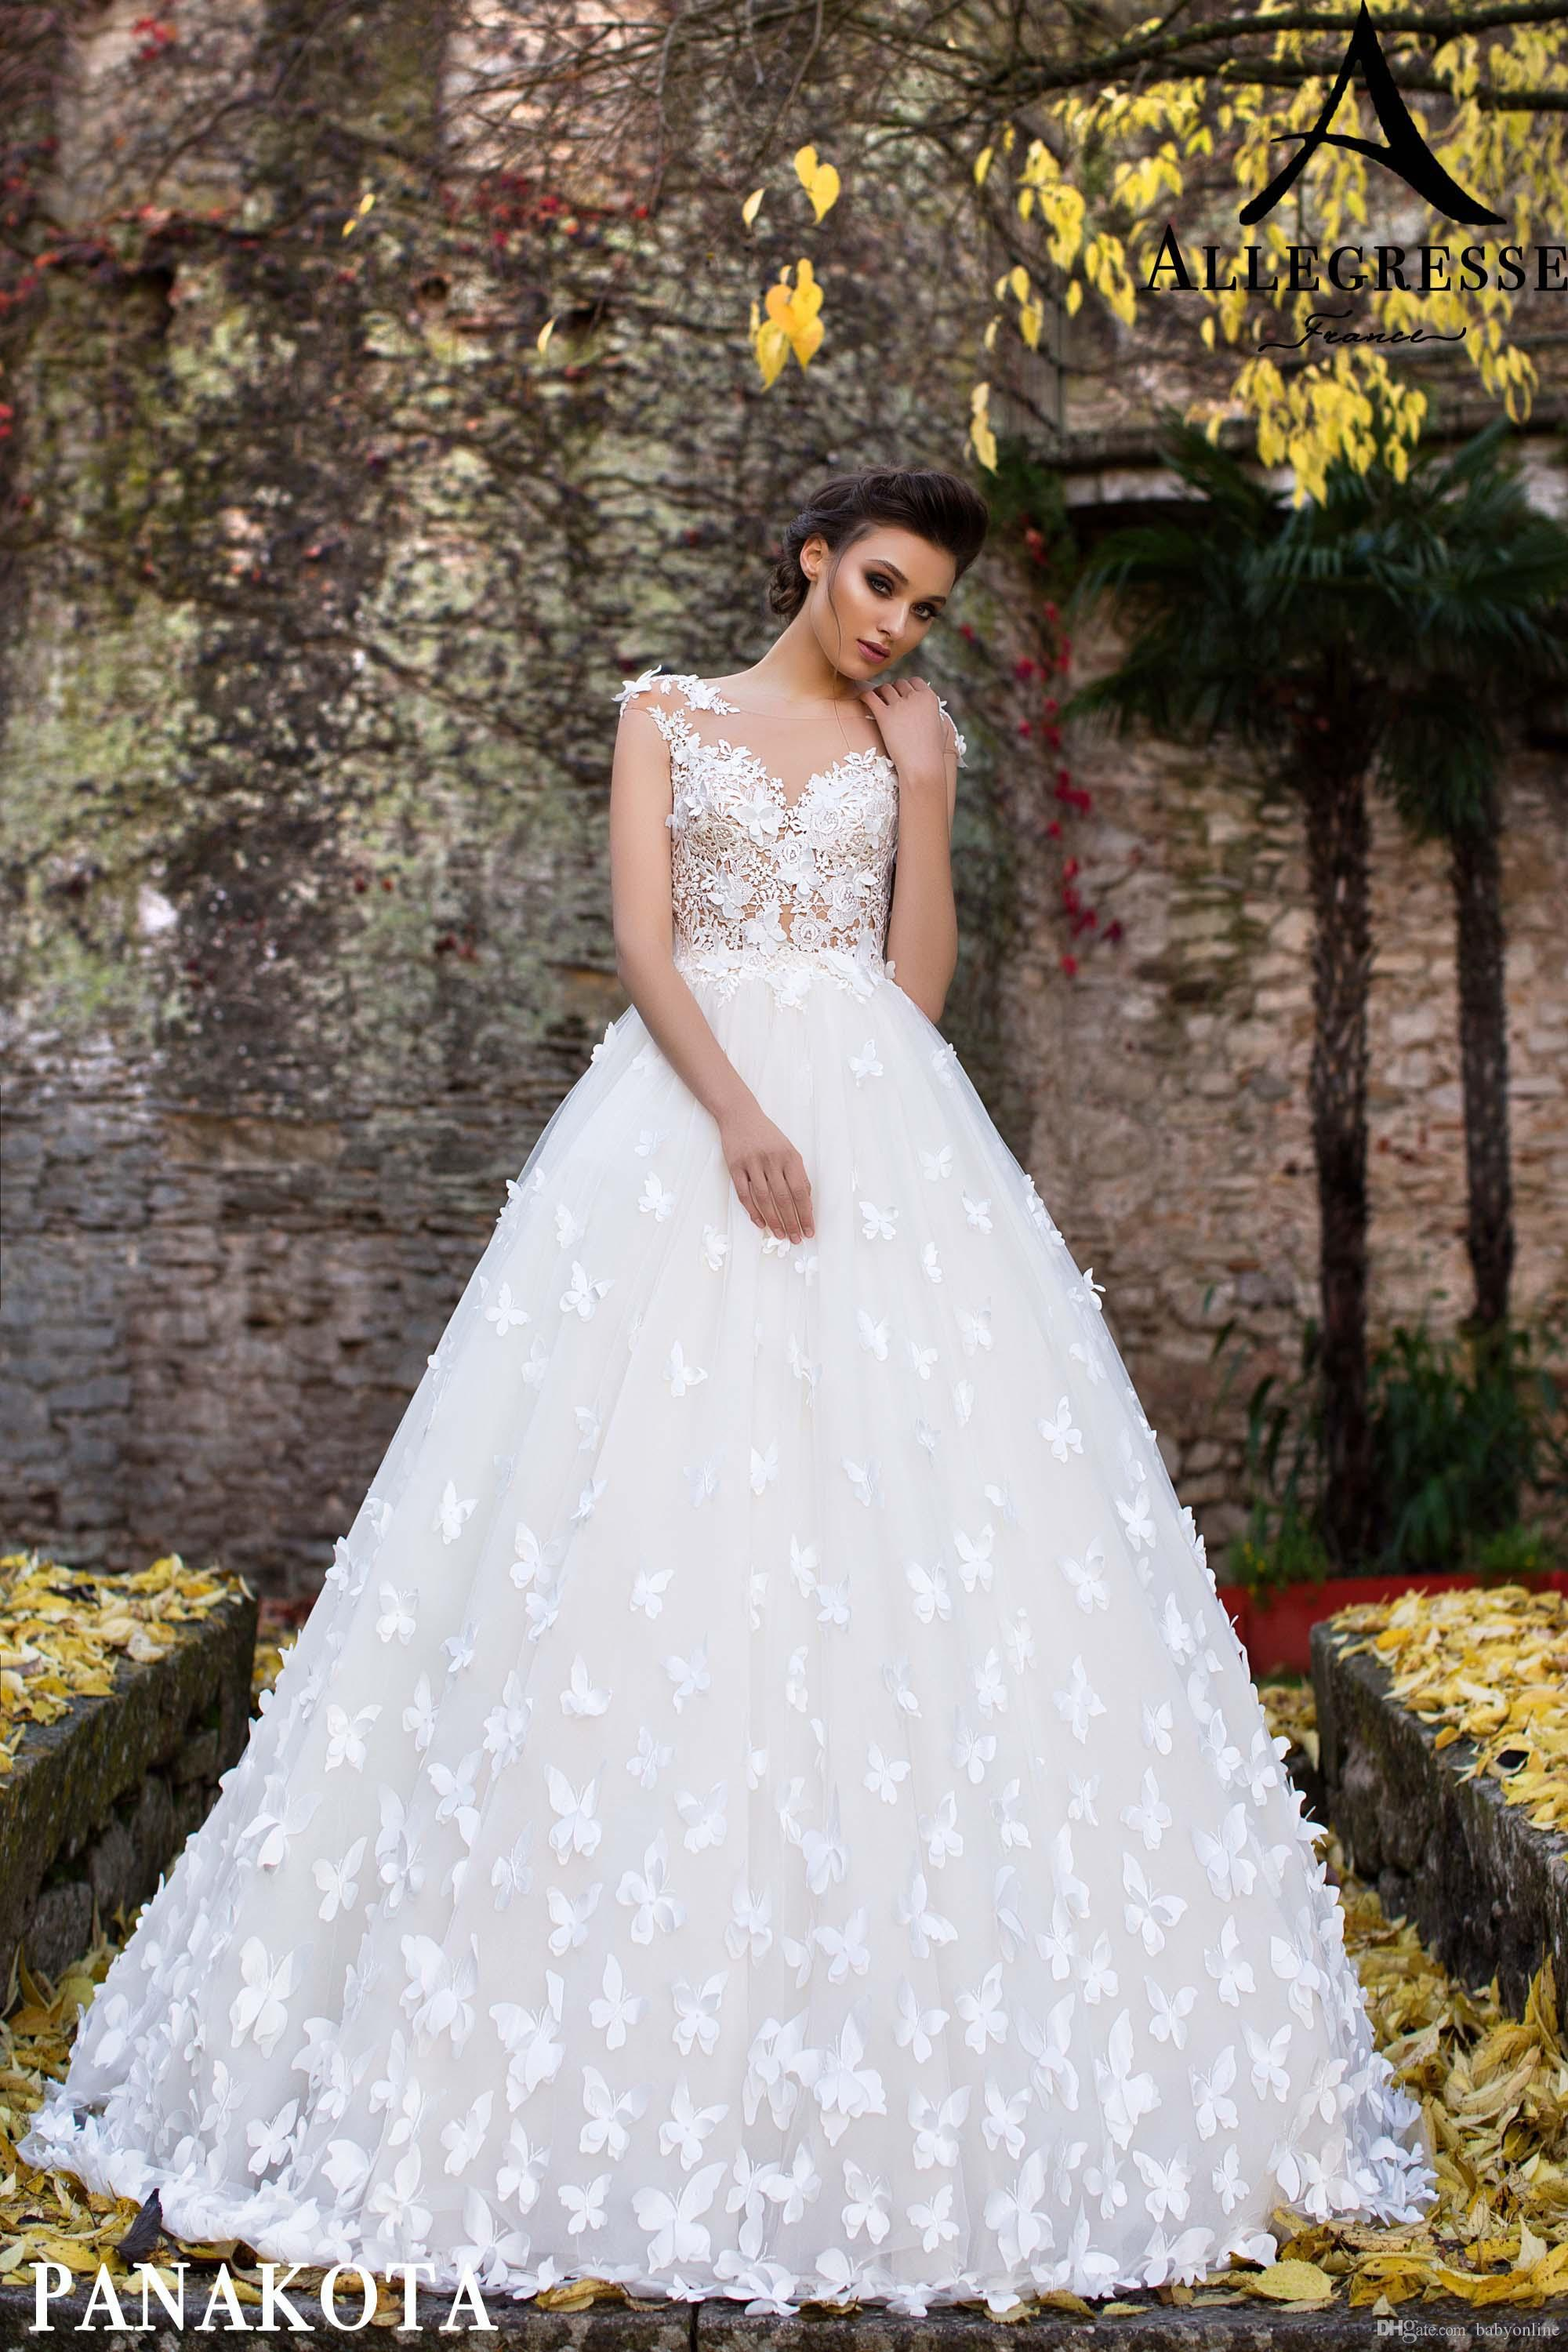 Discount Beautiful White Butterflies Hand Made Flowers Flare Fitted Bridal Wedding Dresses New Sheer Neck Cap Sleeves Appliques Long Bridal Gowns Lace A Line Wedding Dress Modest Wedding Gowns From Babyonline 159 04